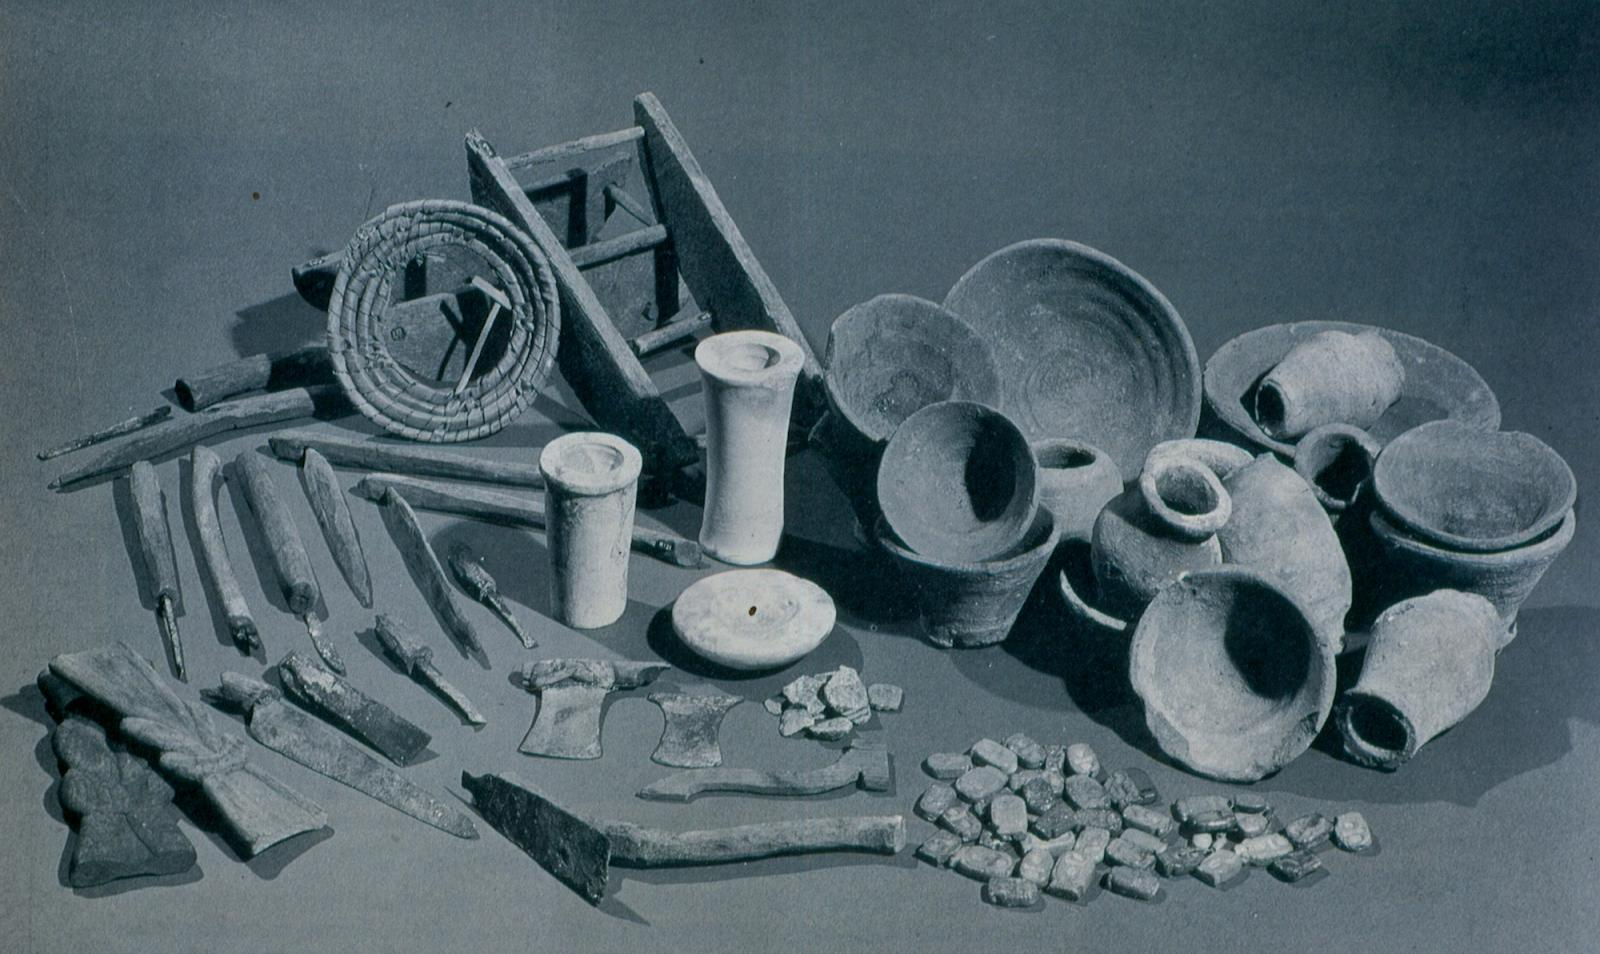 Objects from the foundation deposit discovered by Carter in 1915 at the entrance to the tomb of Amenhetep II.